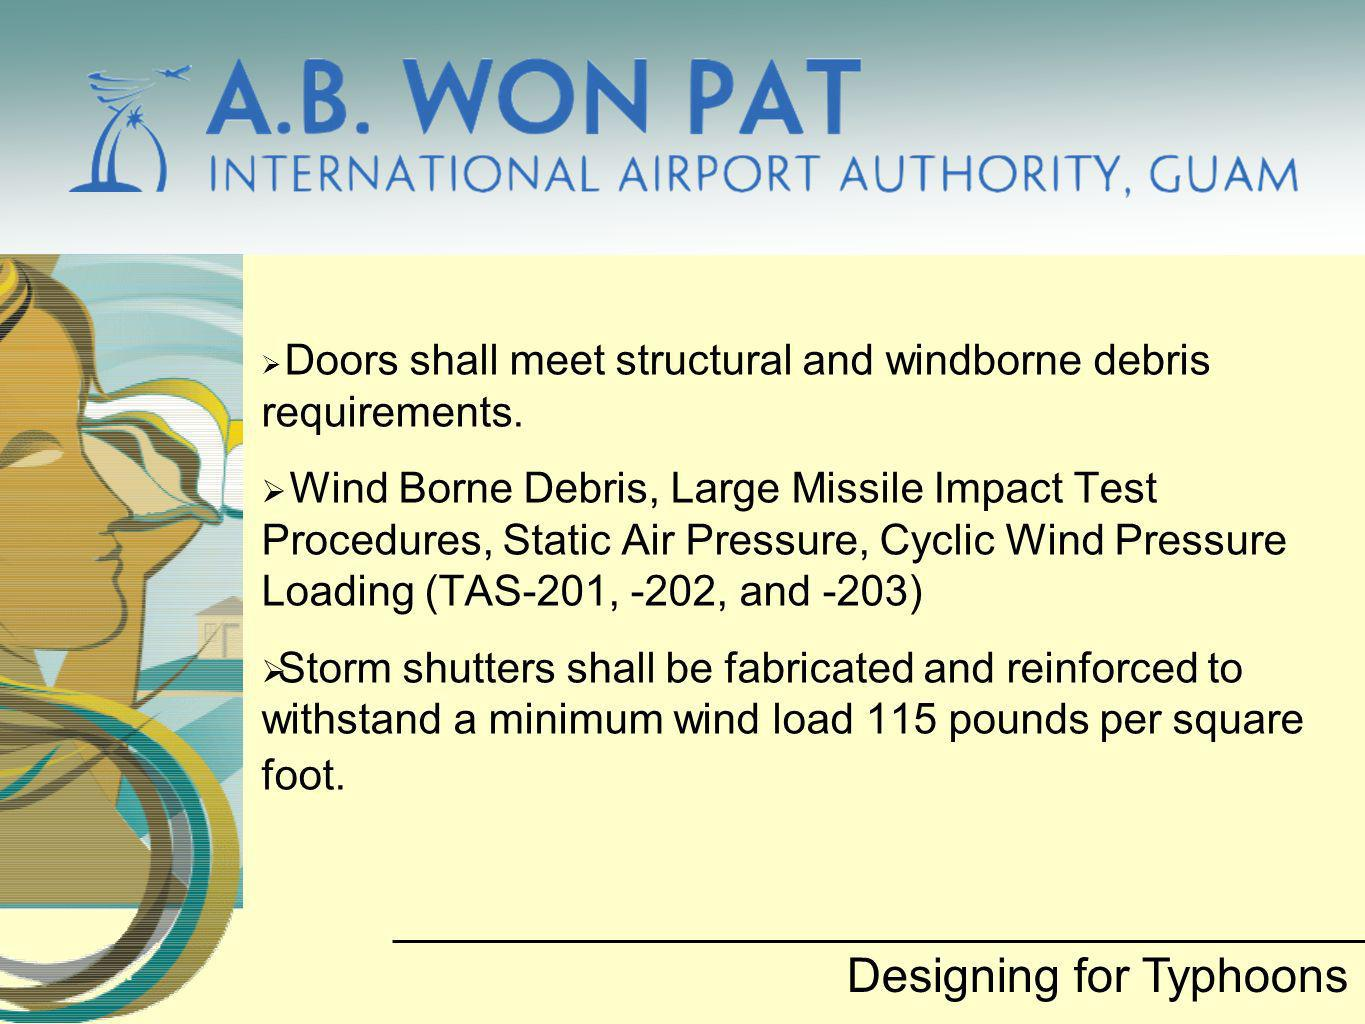 Doors shall meet structural and windborne debris requirements. Wind Borne Debris, Large Missile Impact Test Procedures, Static Air Pressure, Cyclic Wi